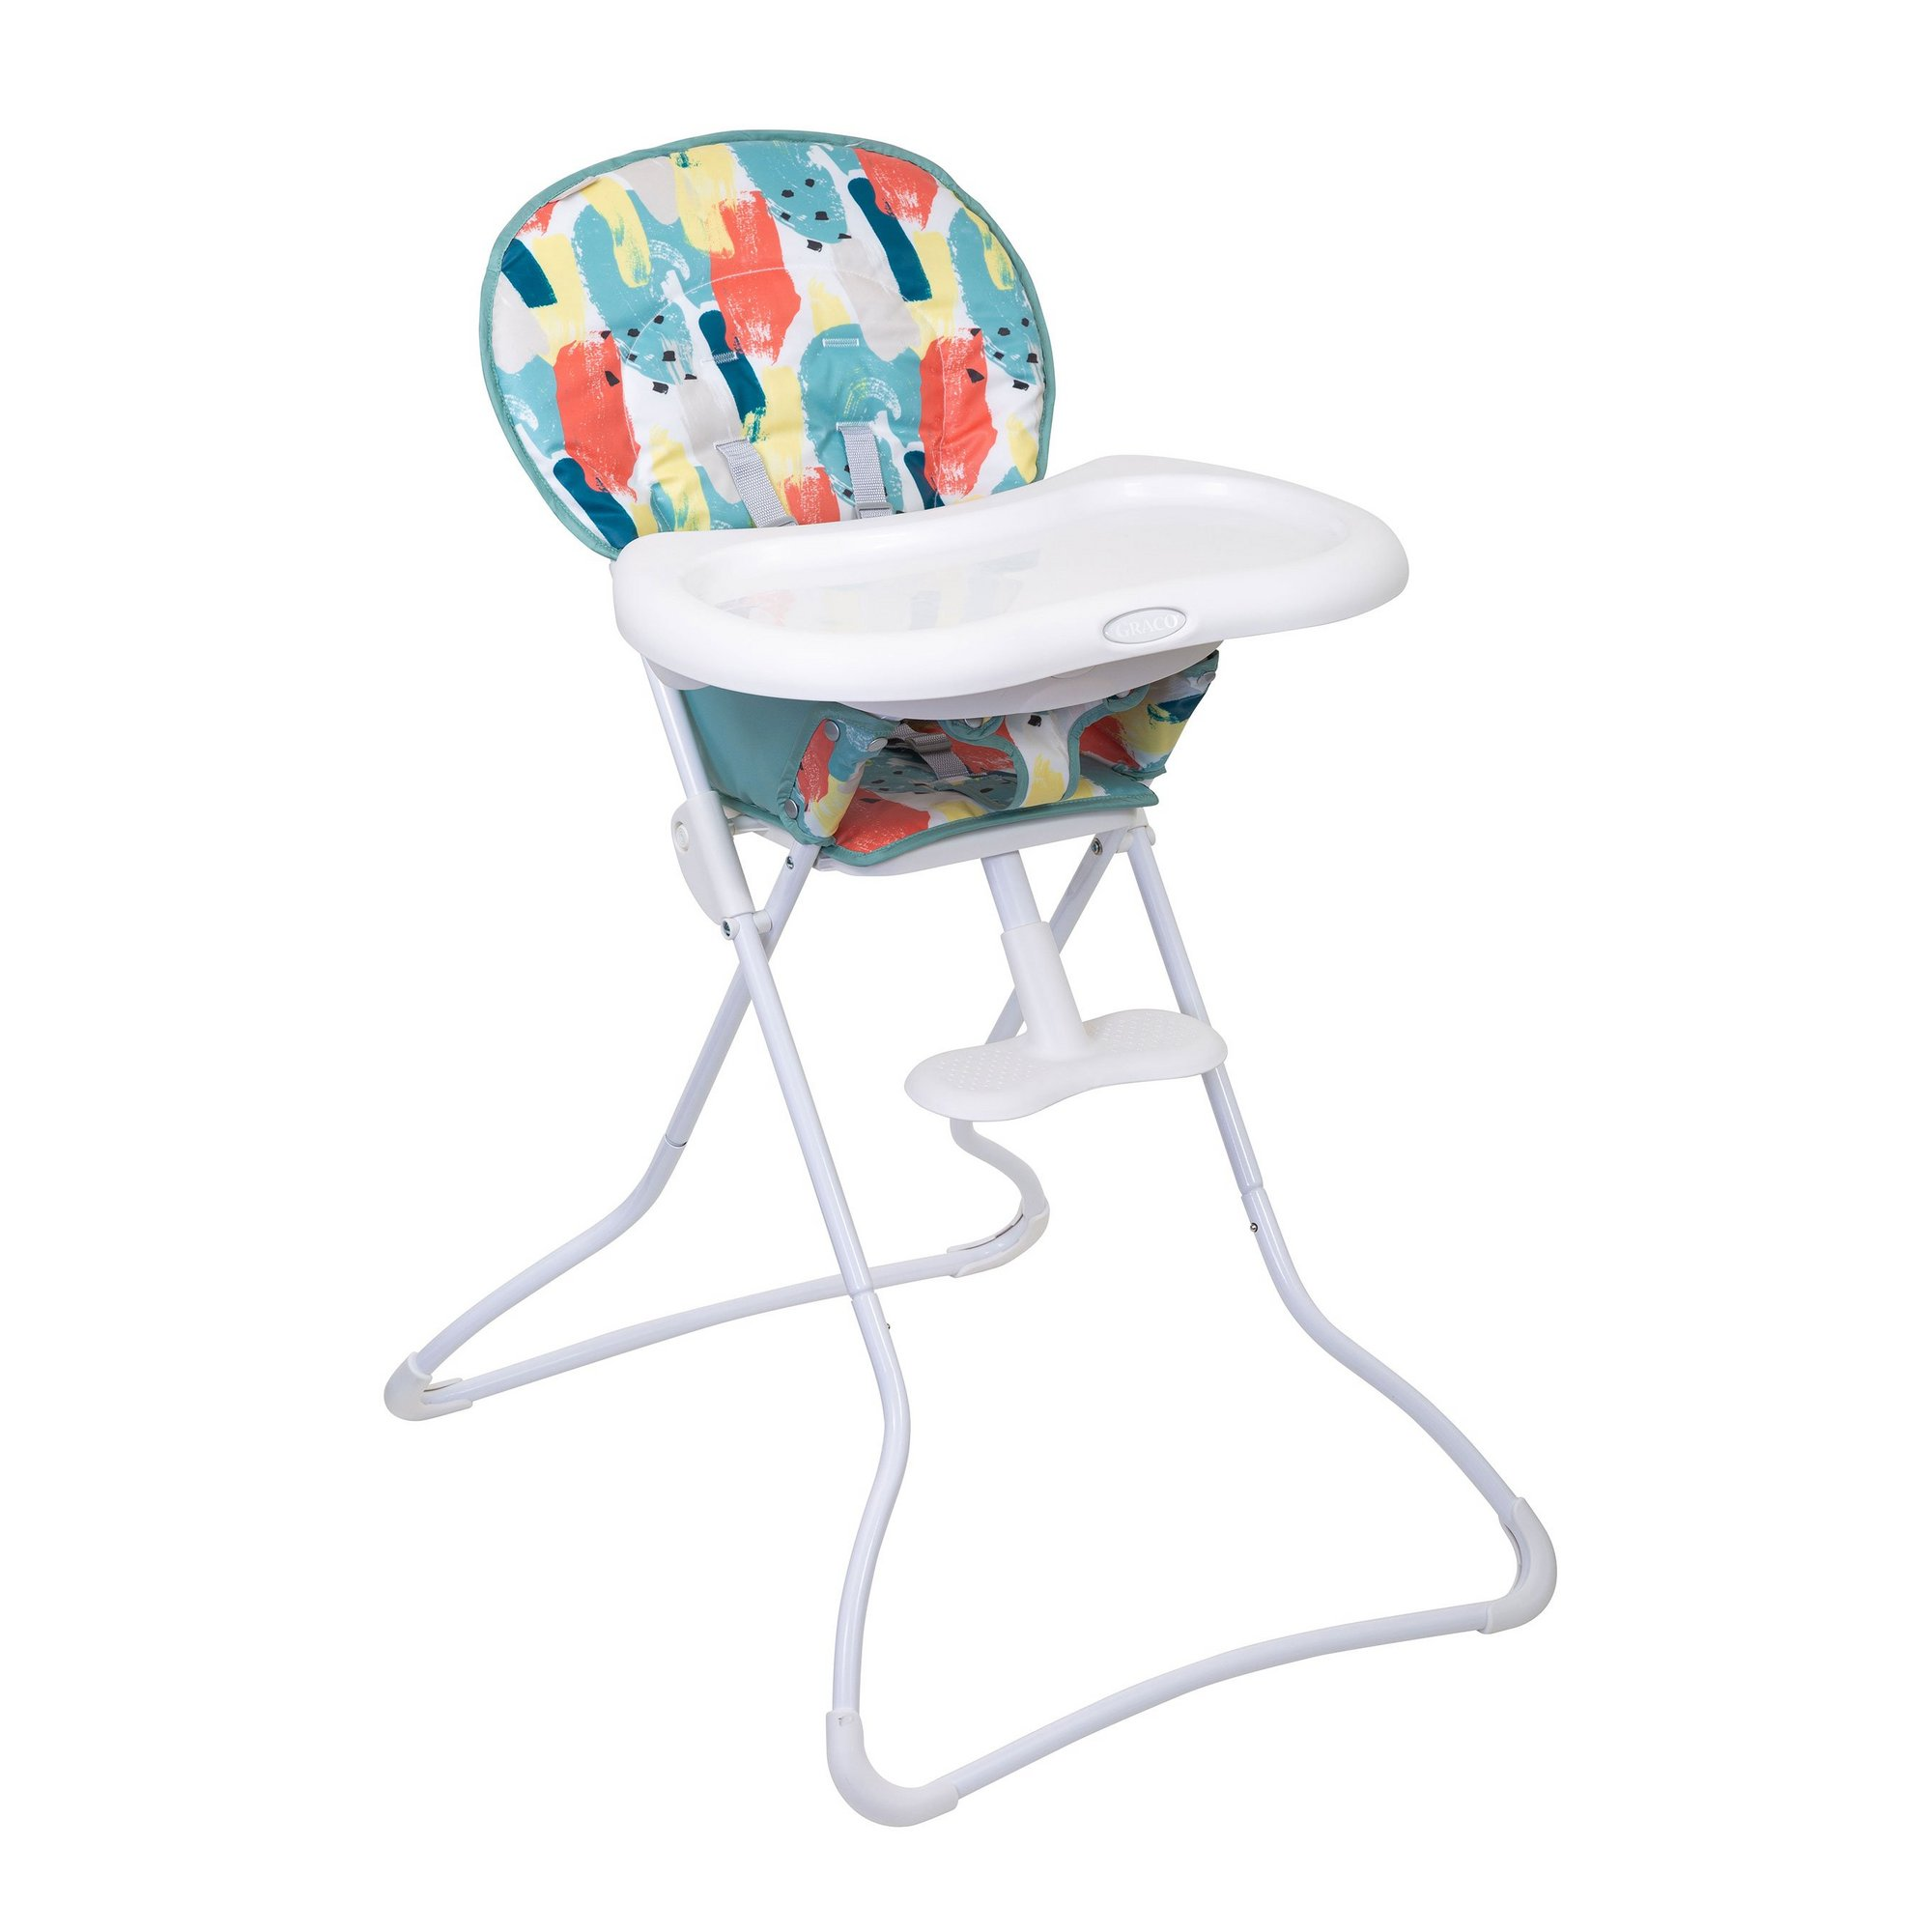 Image of Graco Snack N Stow Highchair - Paintbox